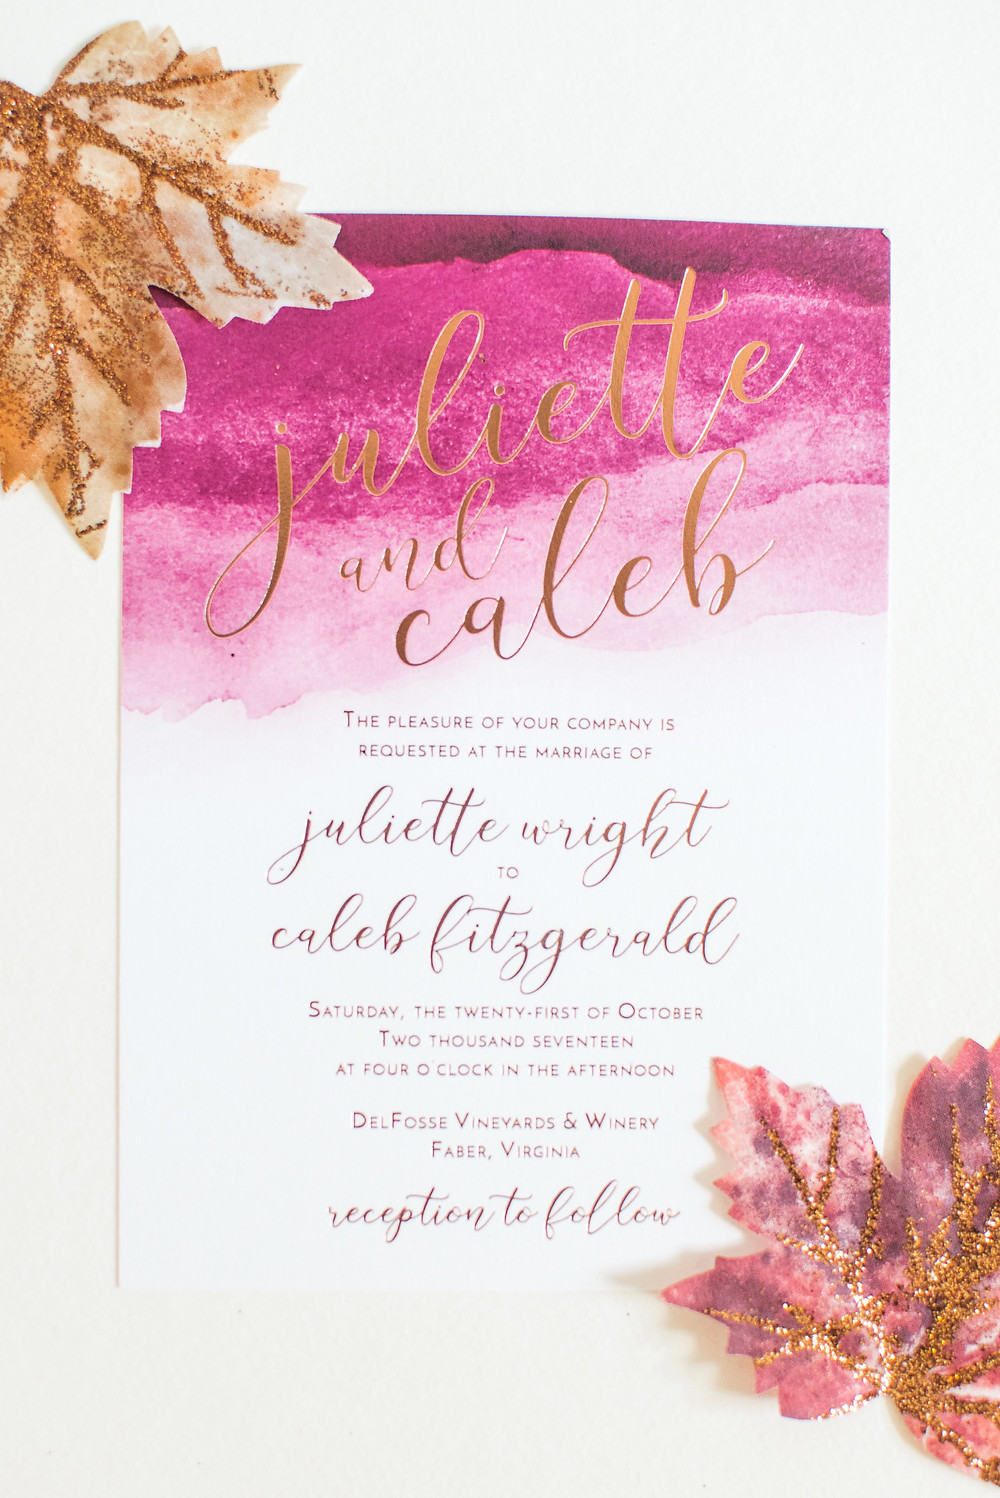 A wedding invitation with some fall leaves.